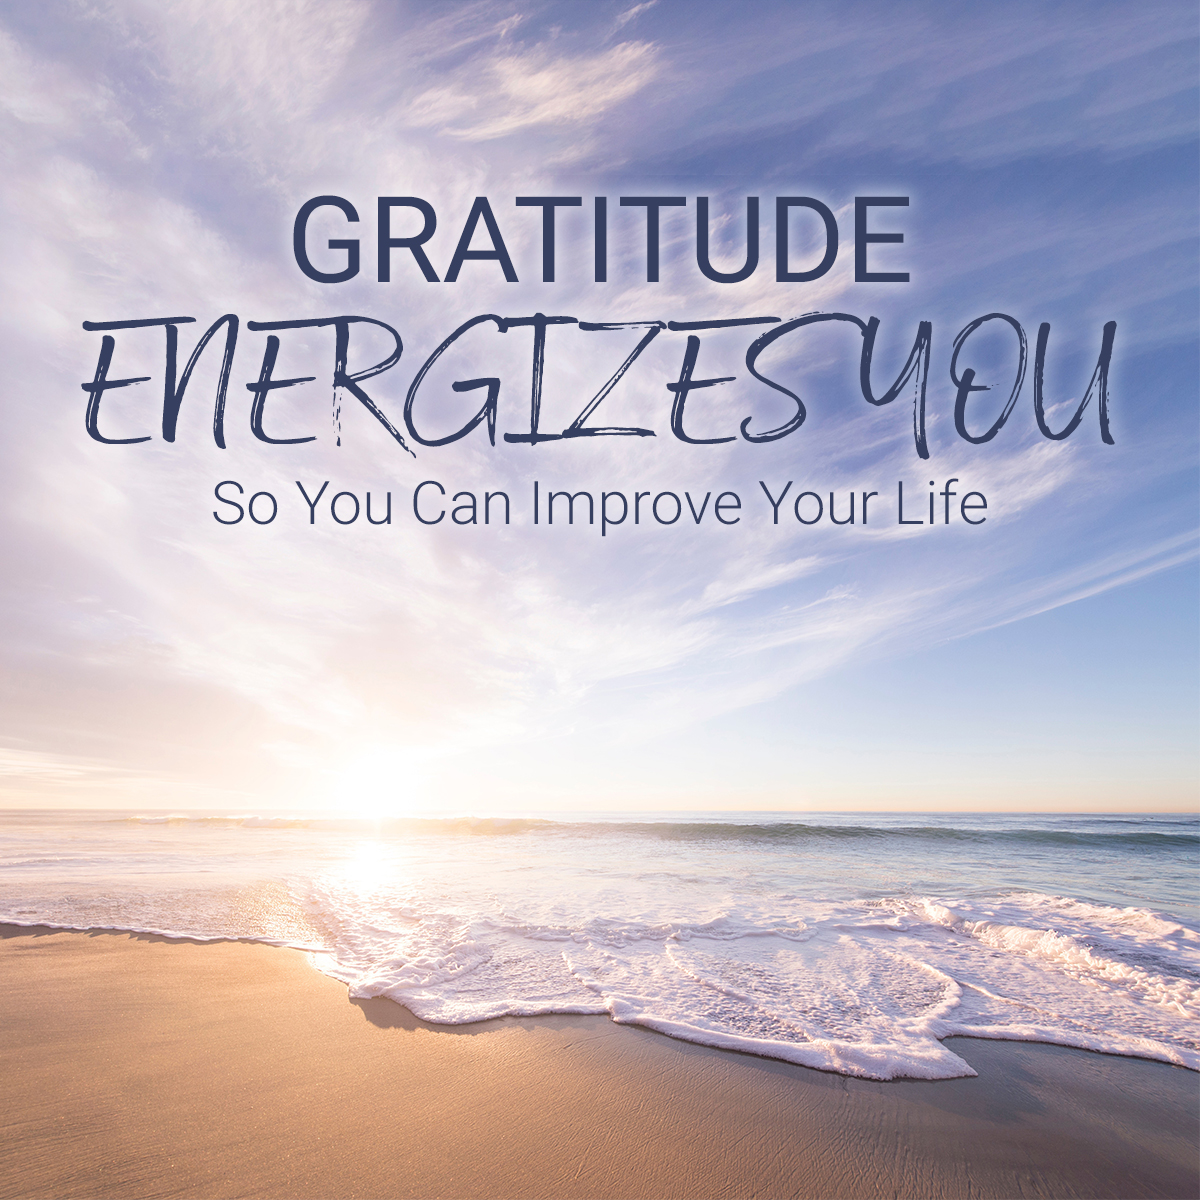 Gratitude with chronic illness